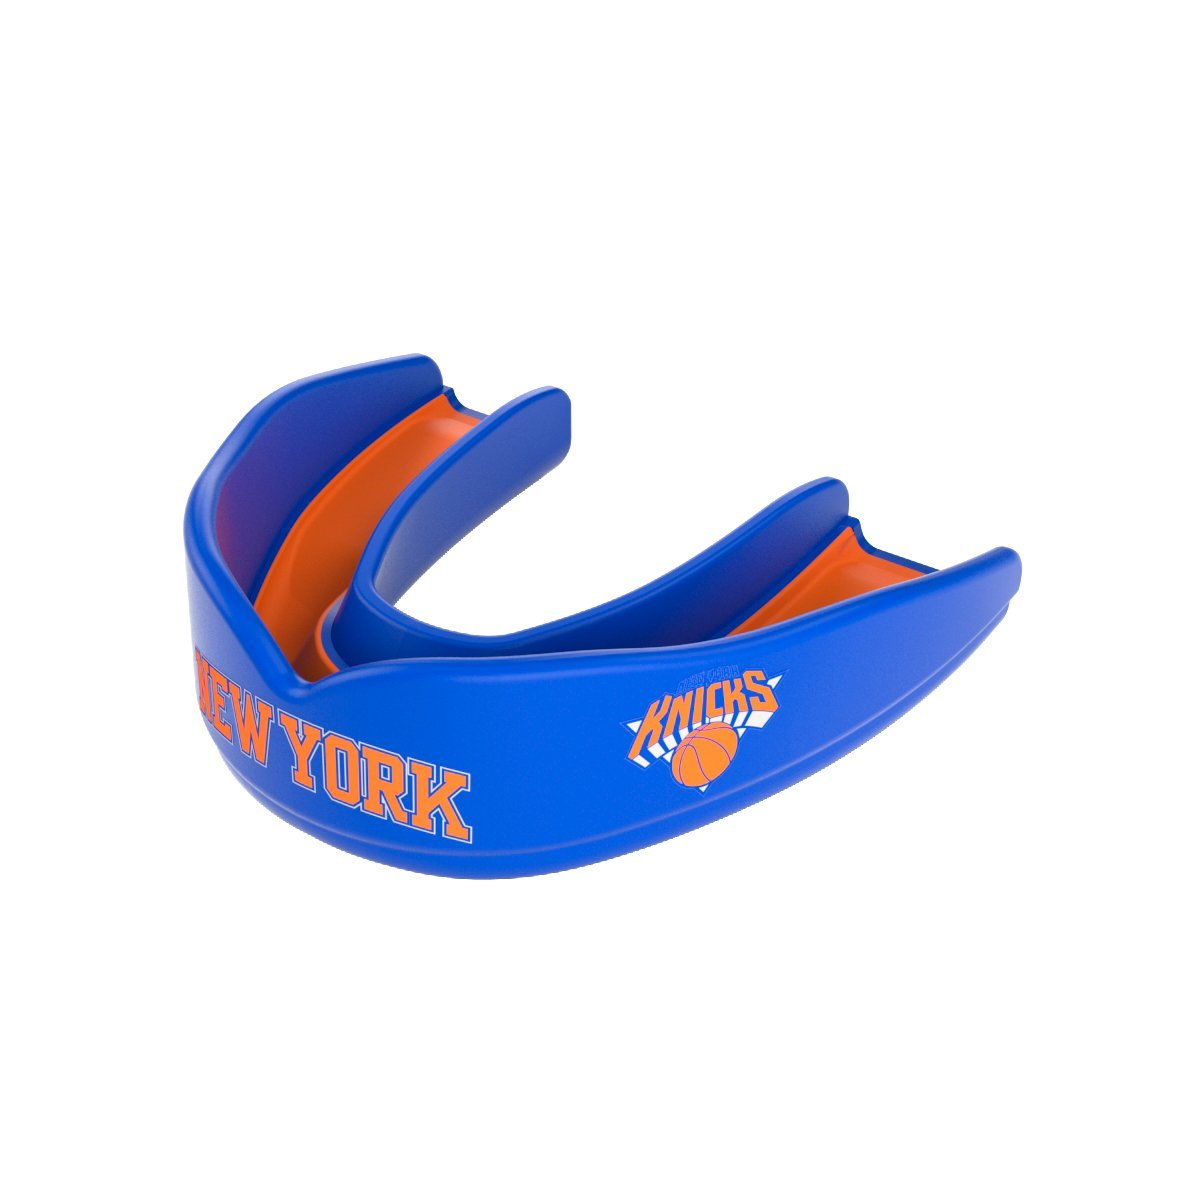 Shock Doctor 8300 NBA New York Knicks Basketball Mouth Guard, Blue/Orange, Adult